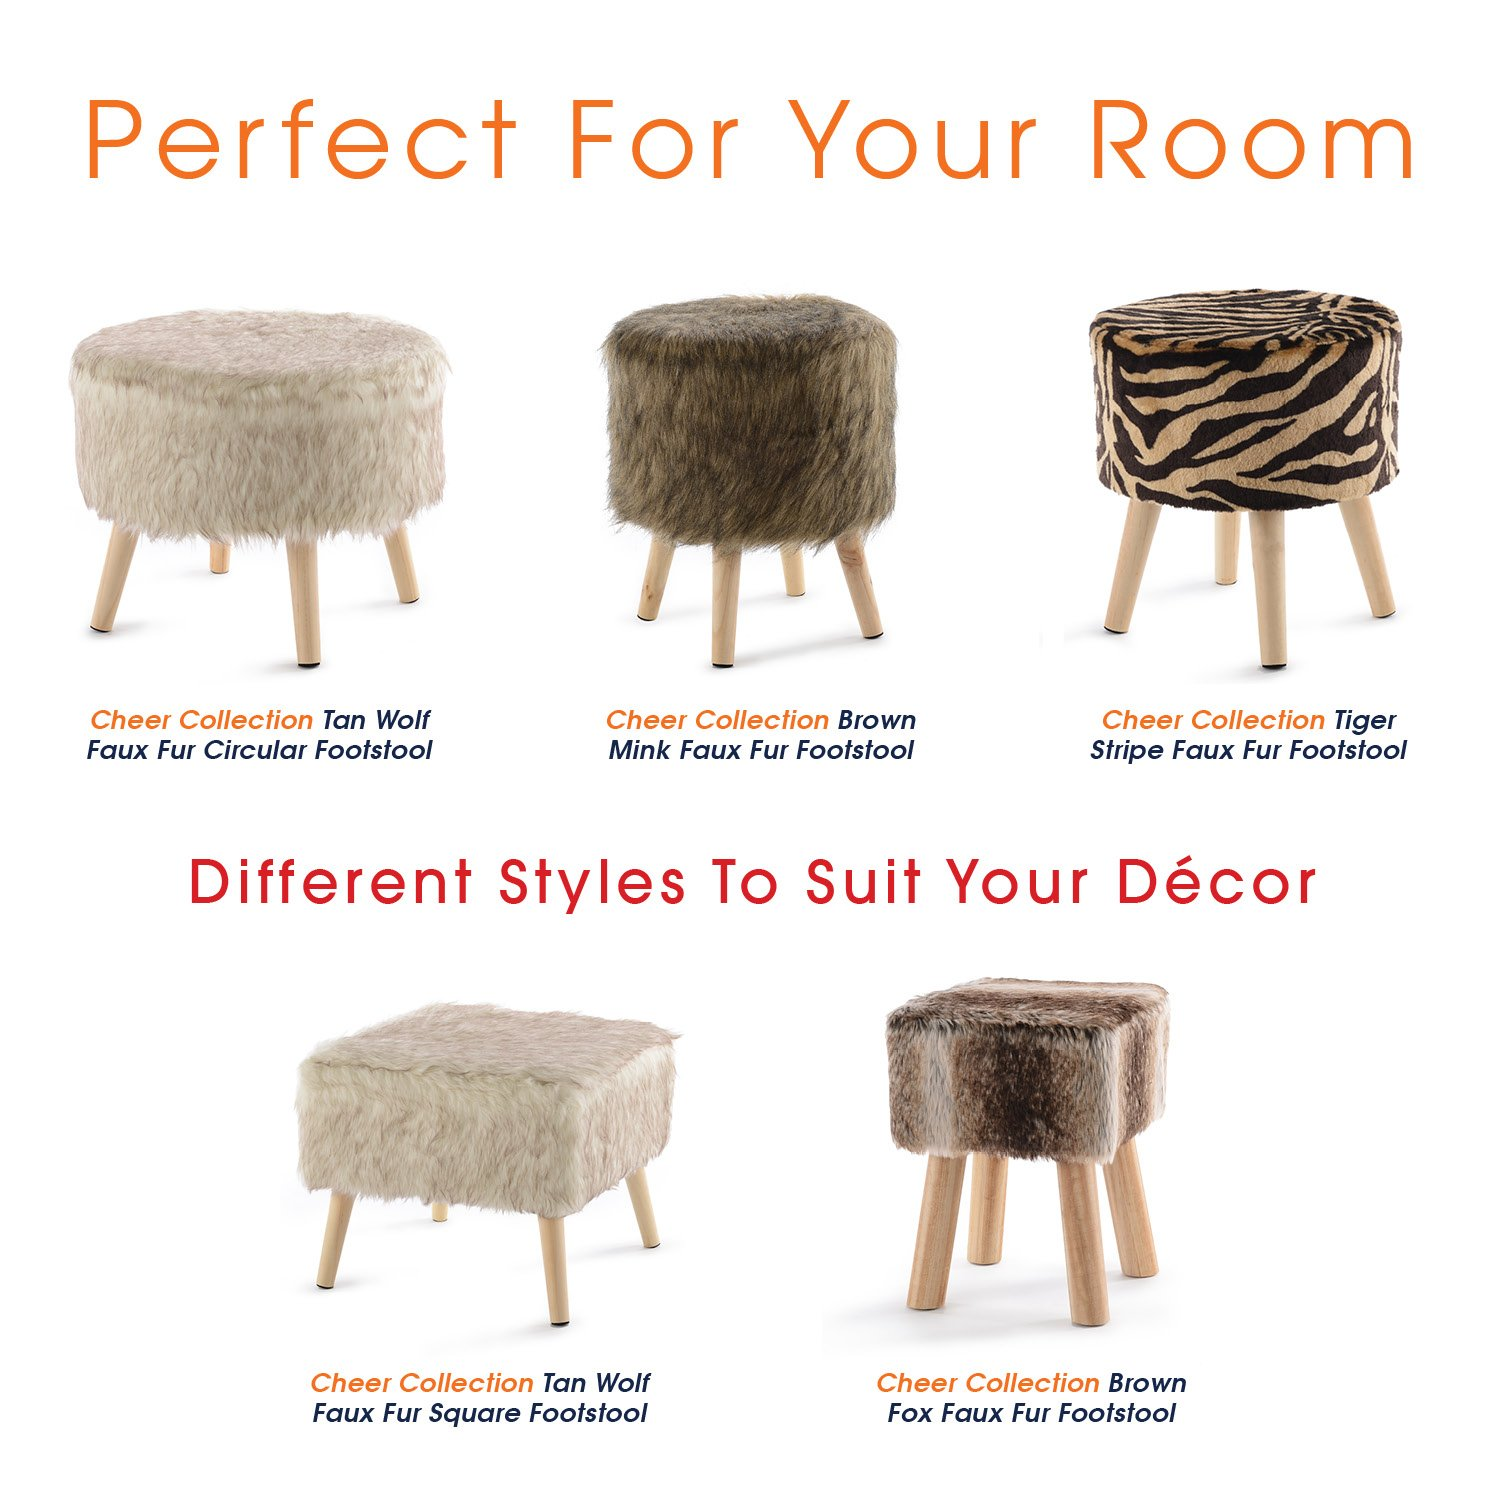 Cheer Collection 13'' Round Ottoman | Super Soft Decorative Brown Mink Faux Fur Foot Stool with Wood Legs by Cheer Collection (Image #7)